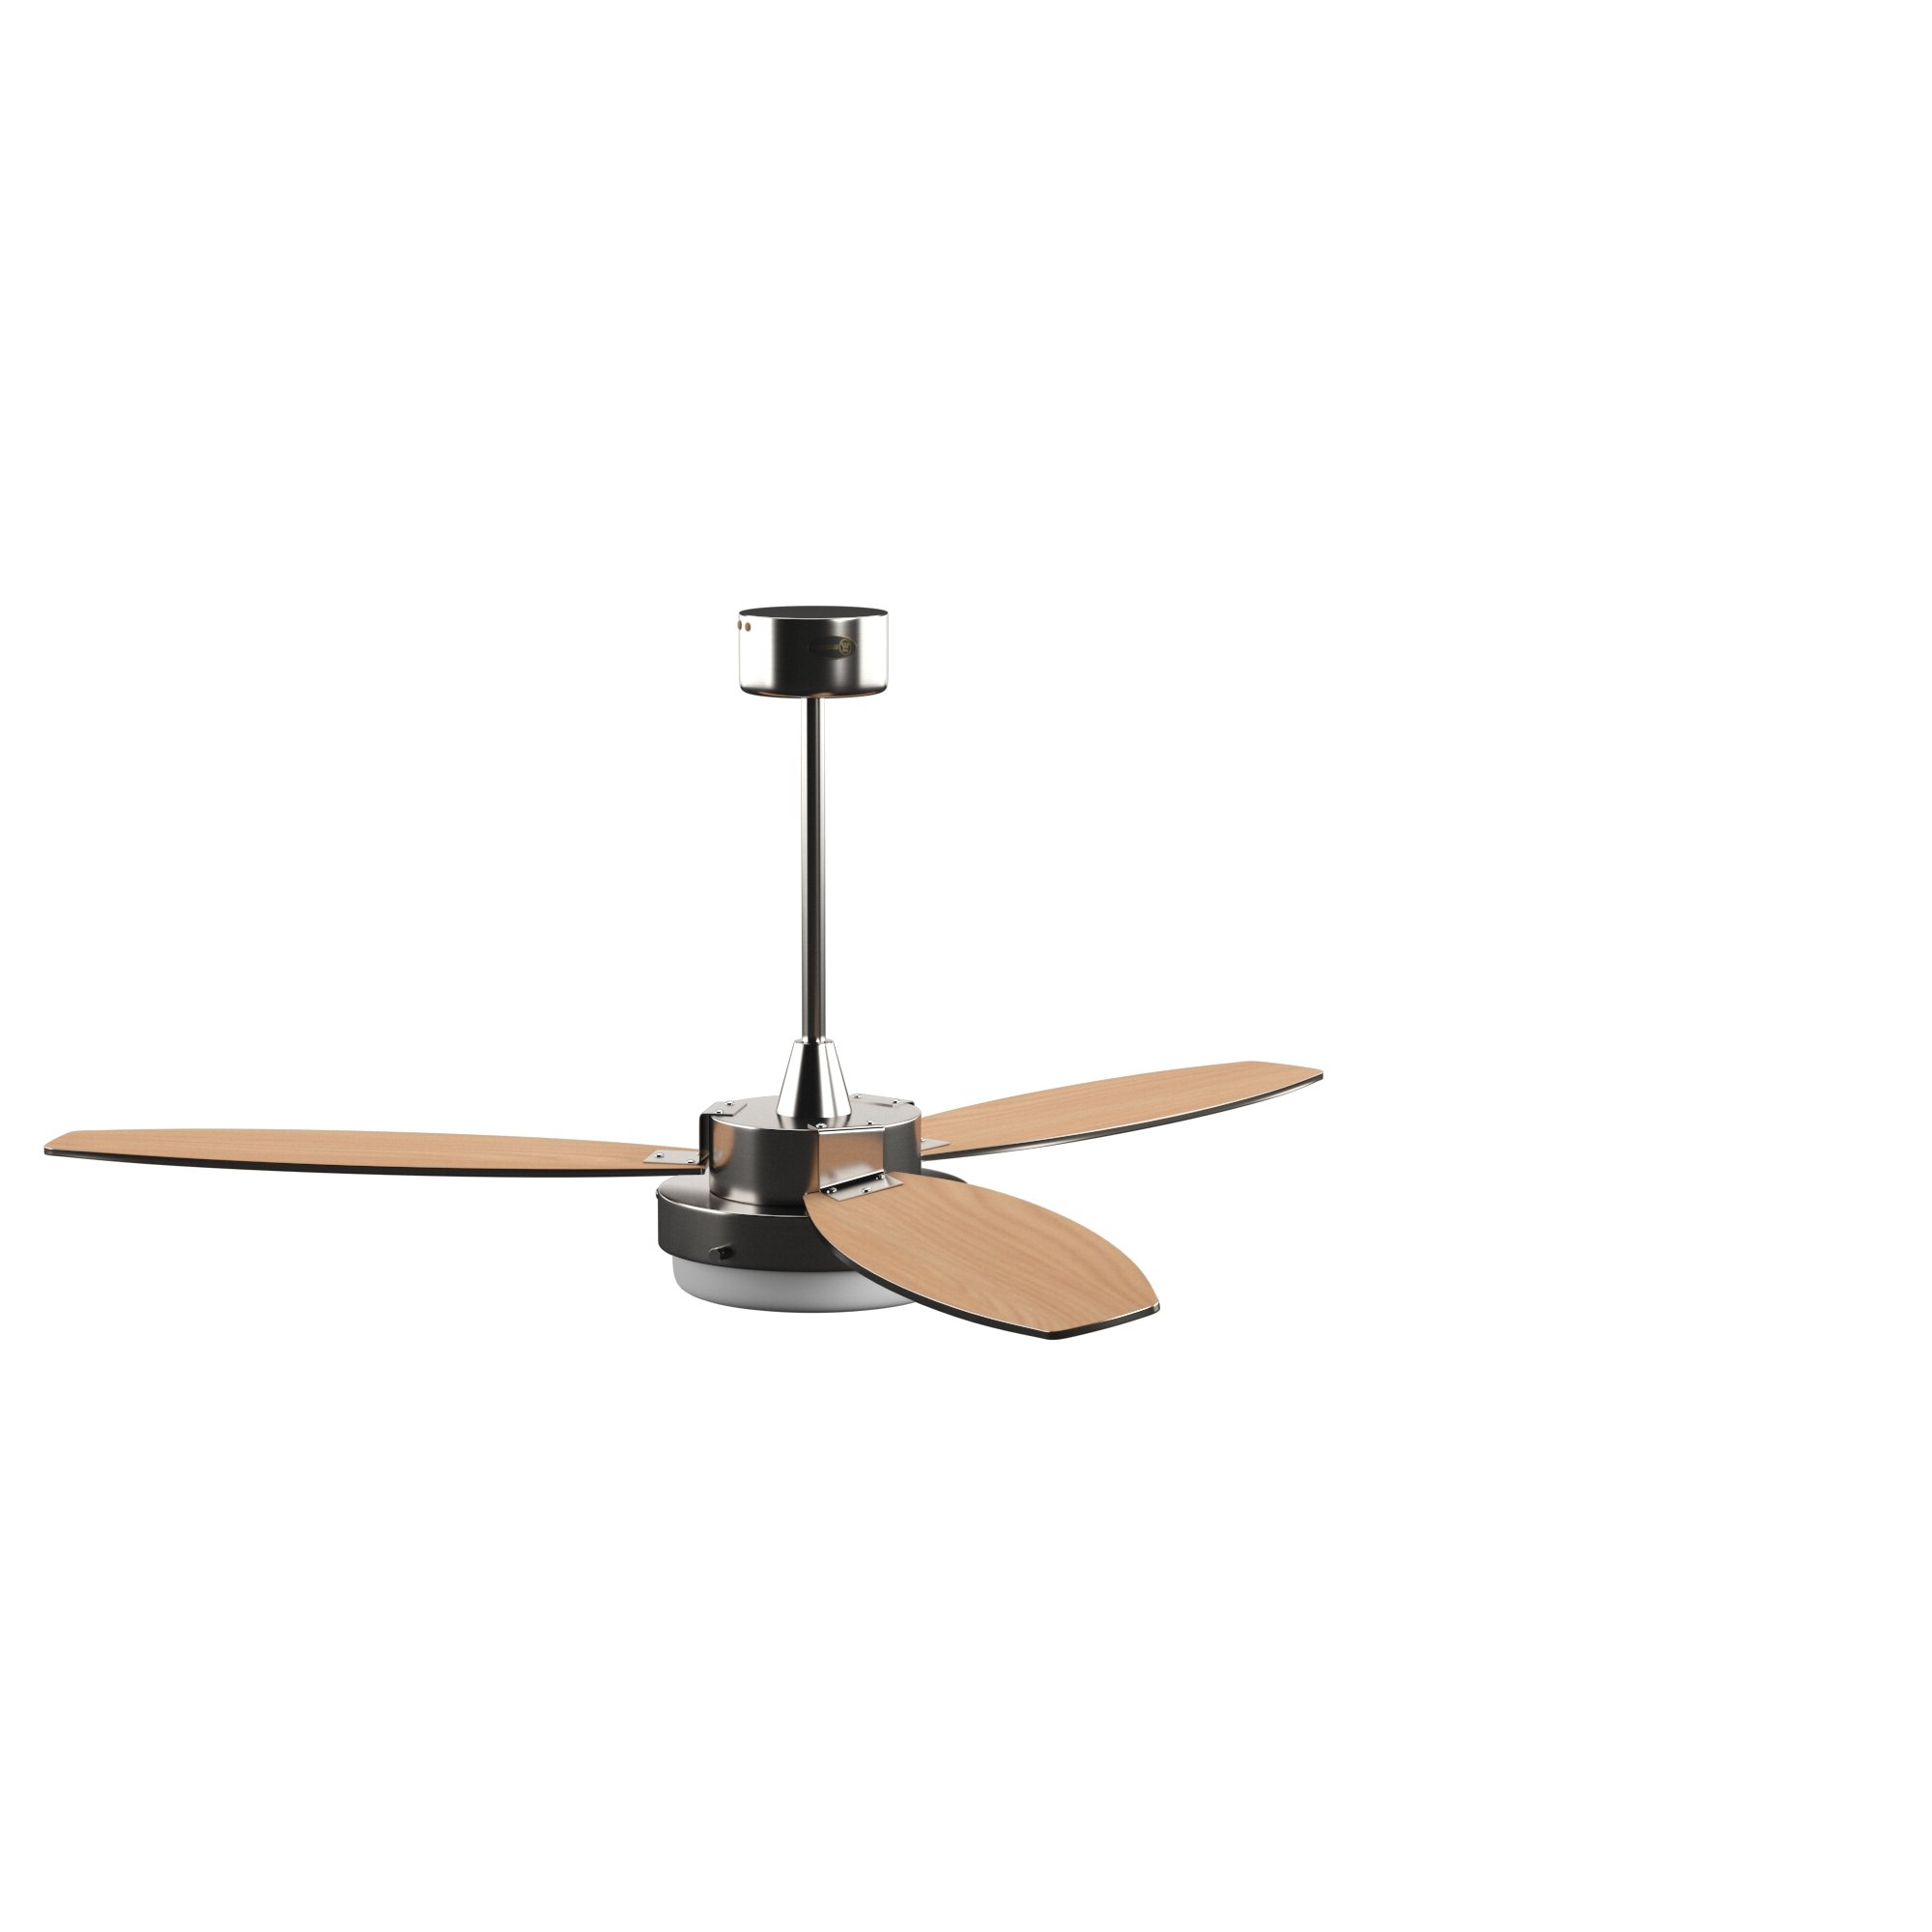 "Roto 3 Blade Ceiling Fans Inside Most Current 52"" Corsa Two Light Reversible Plywood 3 Blade Ceiling Fan, Light Kit Included (View 11 of 20)"